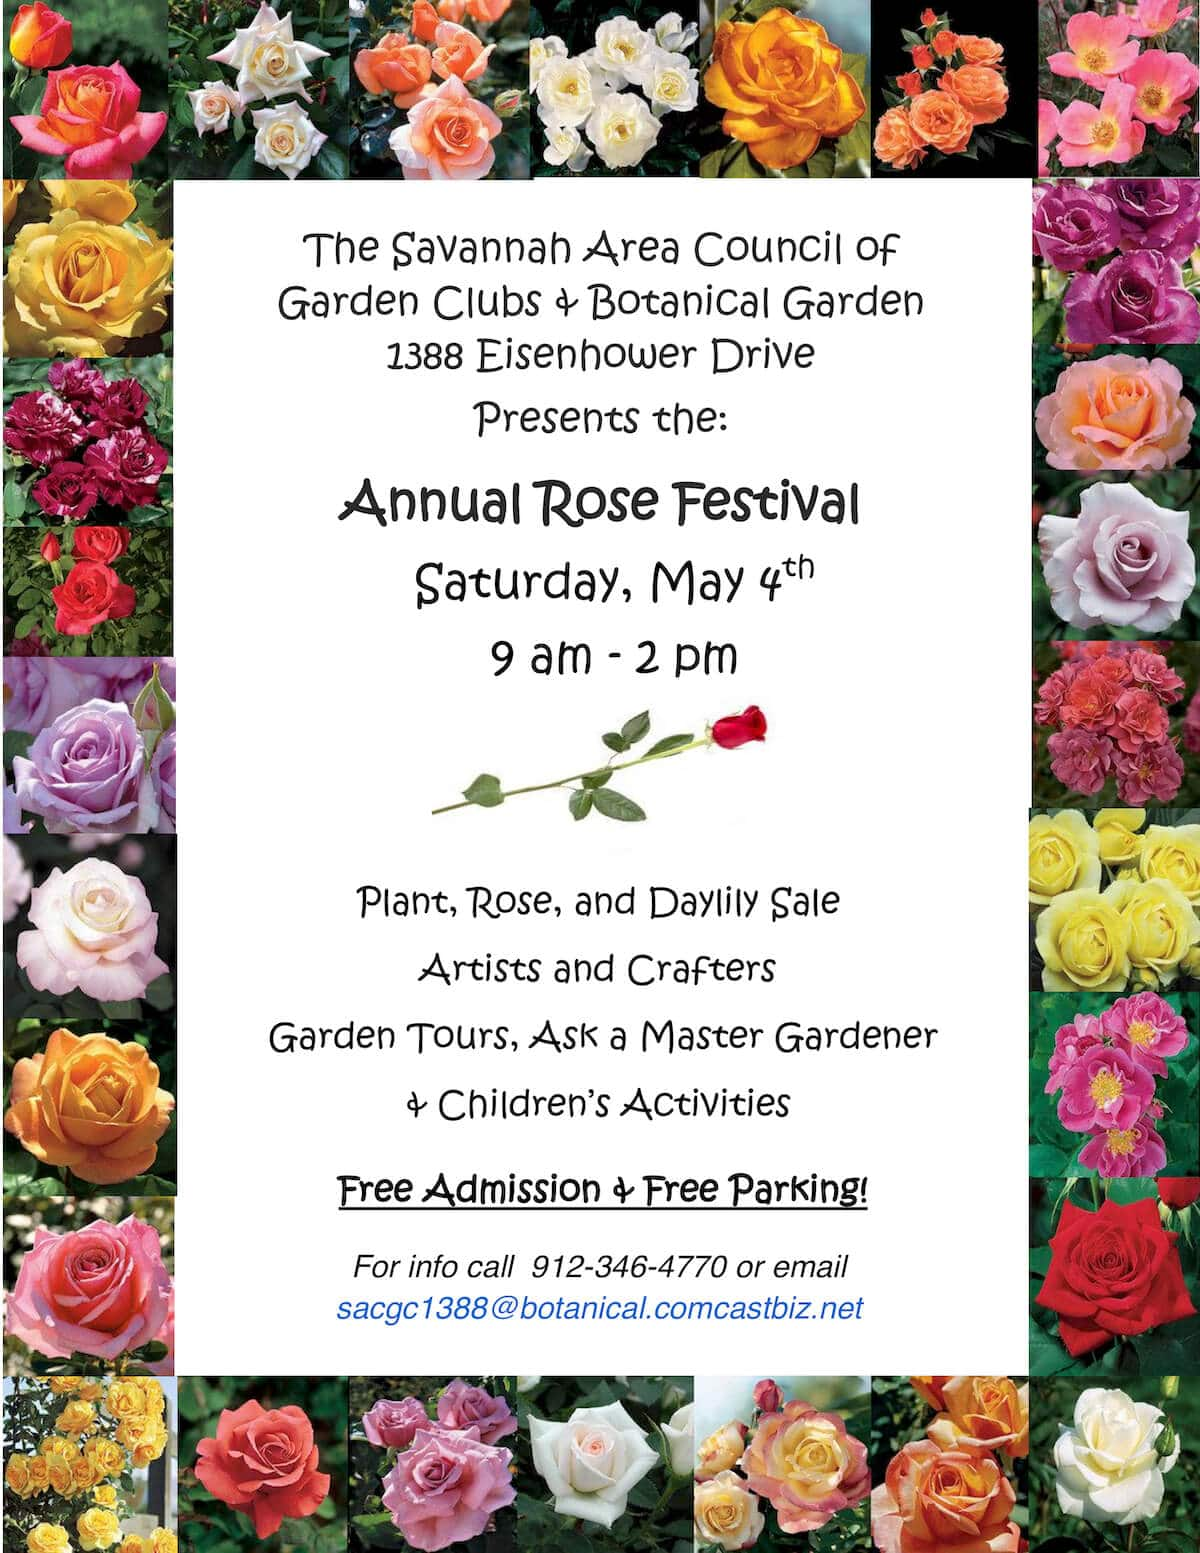 Annual Rose Festival 2019 Savannah